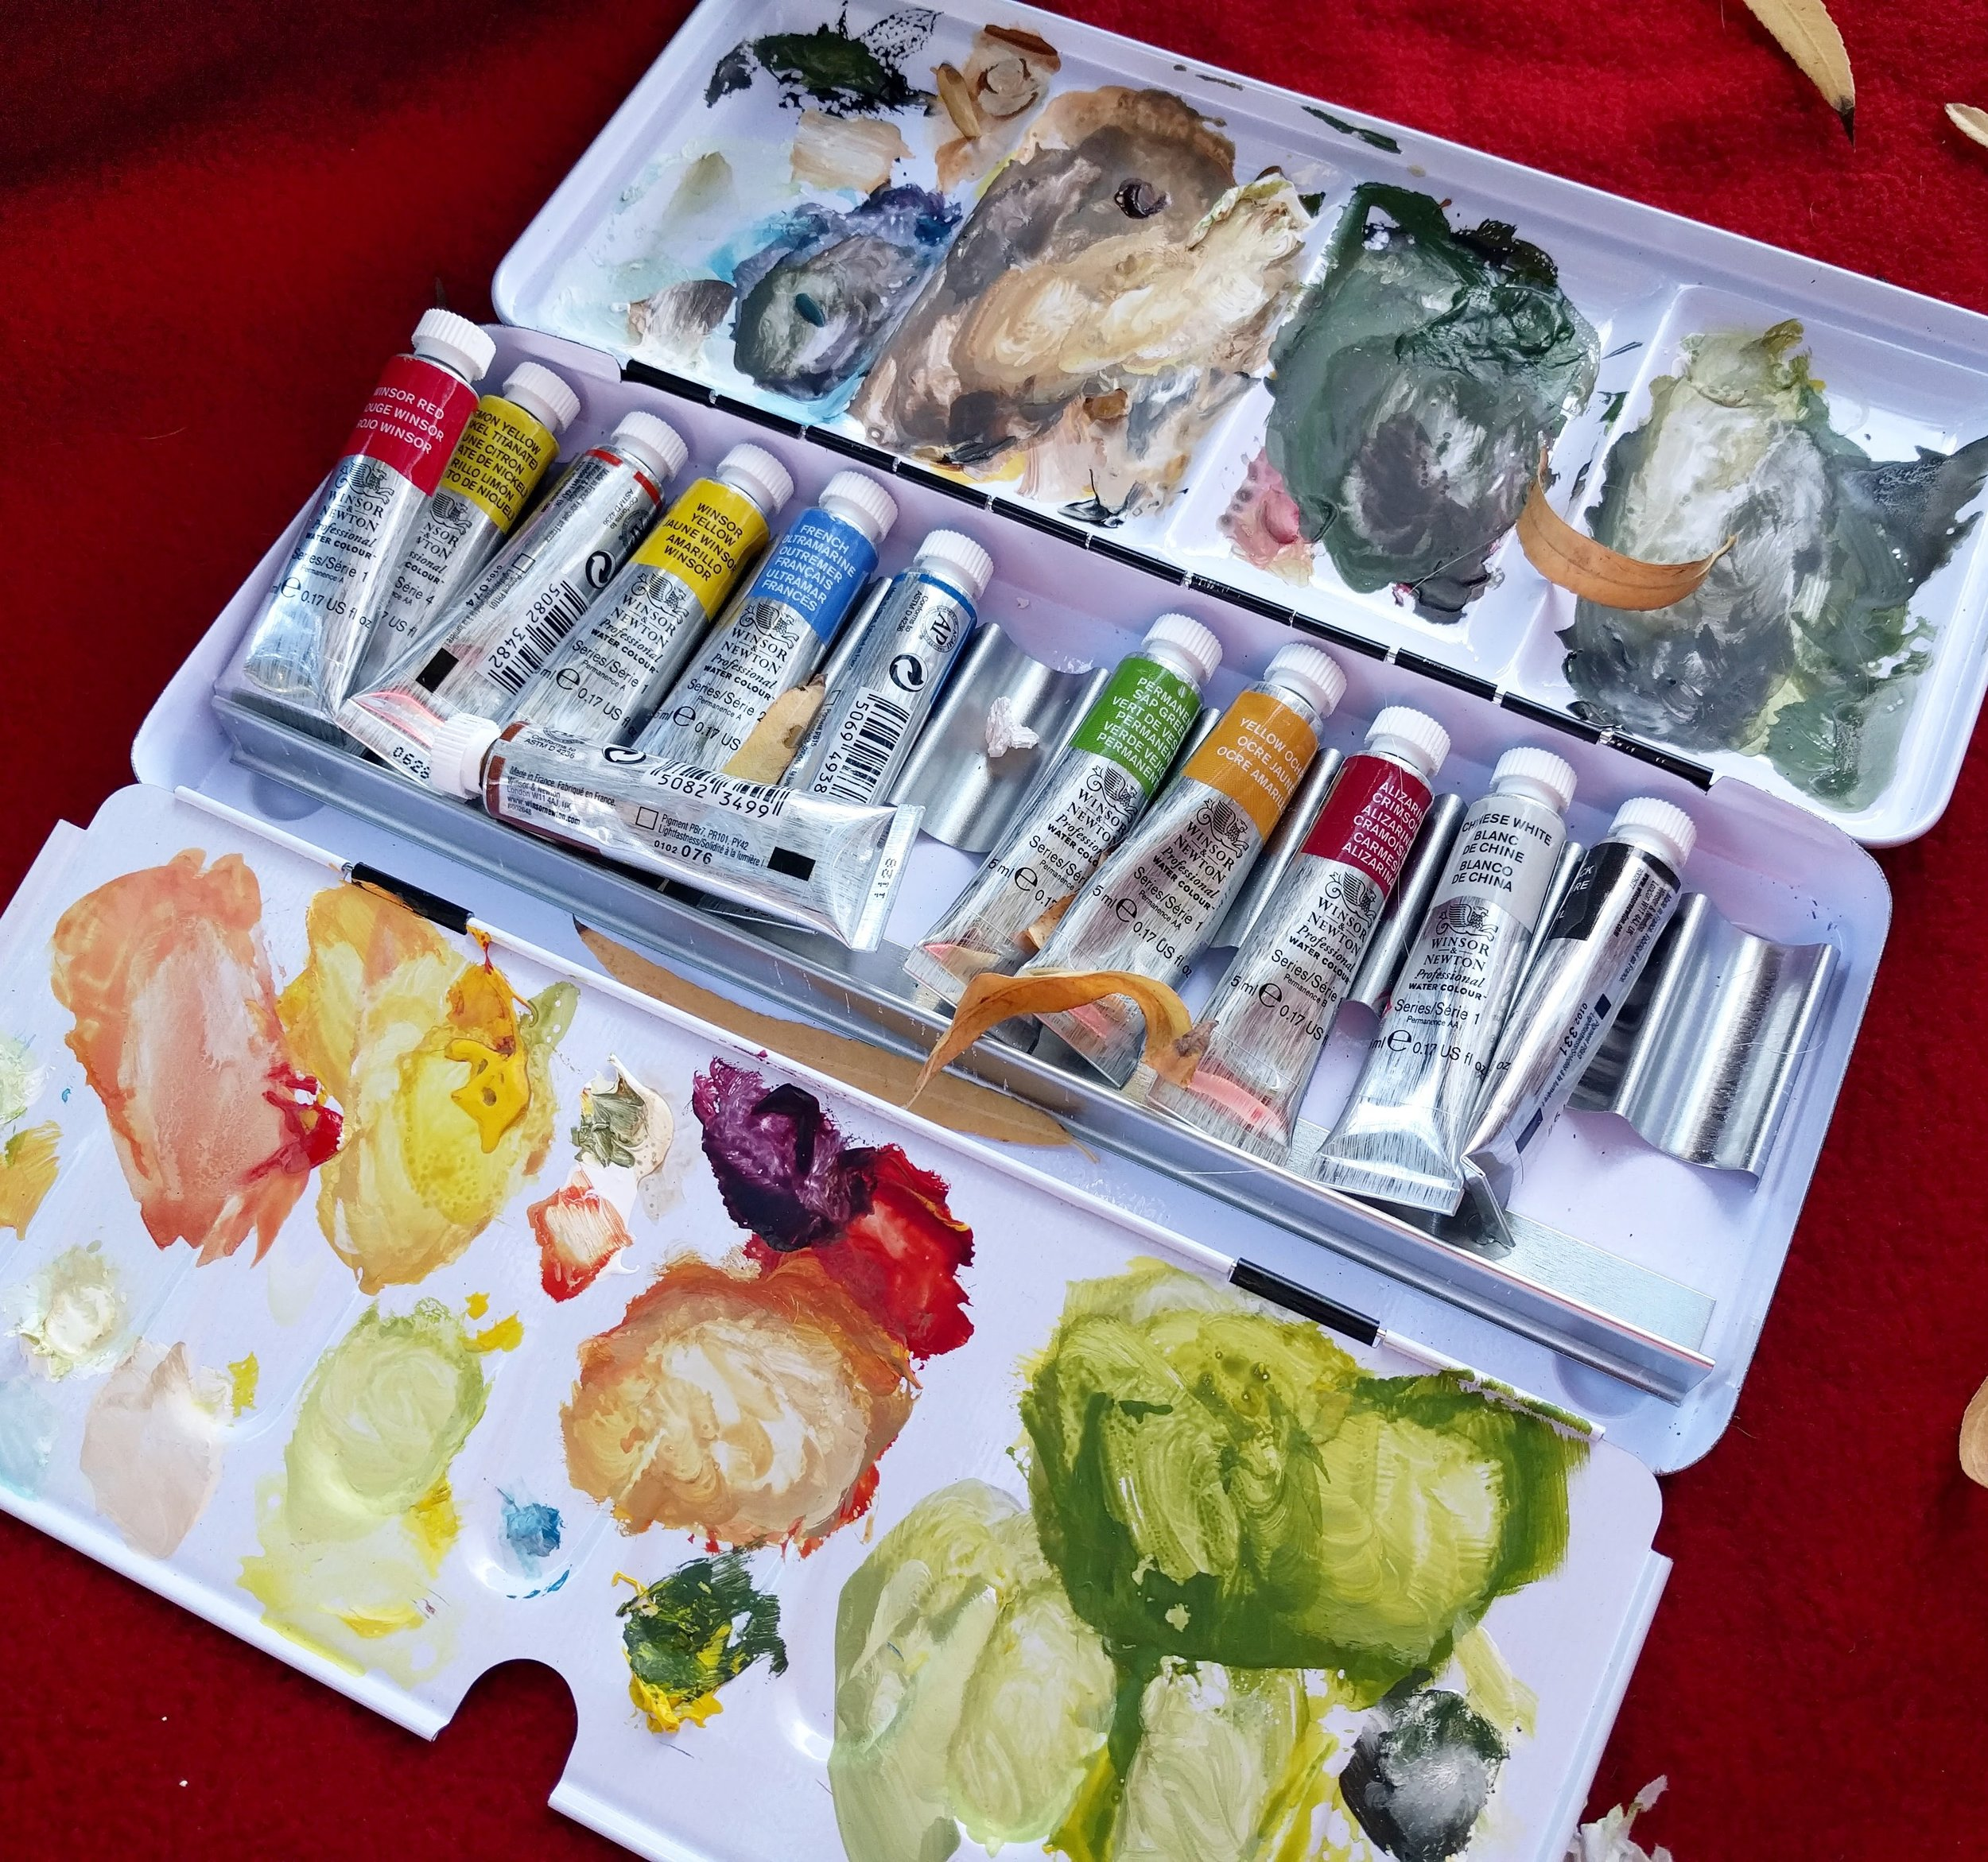 Artist watercolour plein air travel palette Winsor and Newton